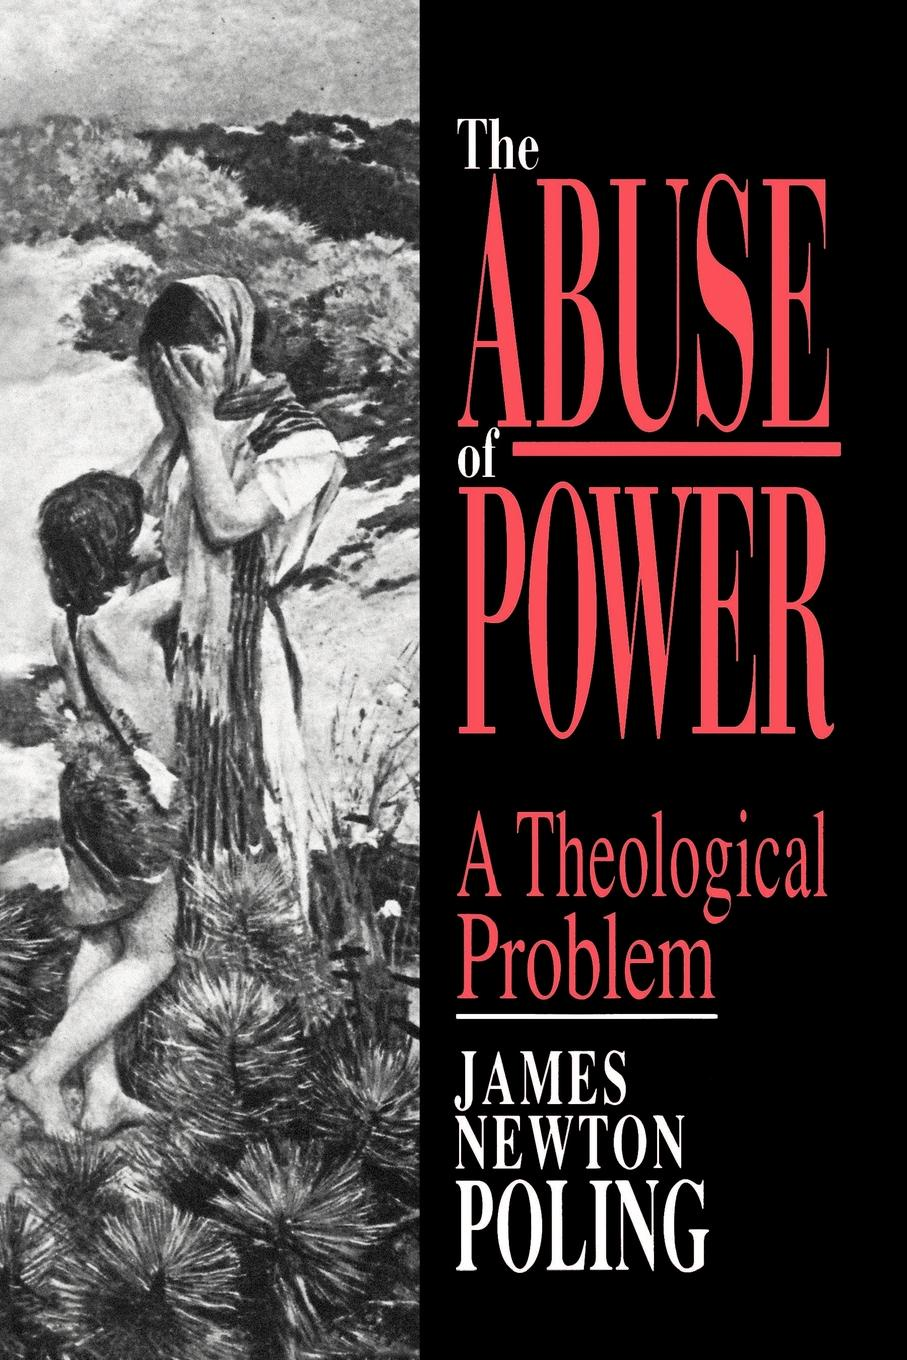 James Newton Poling The Abuse of Power